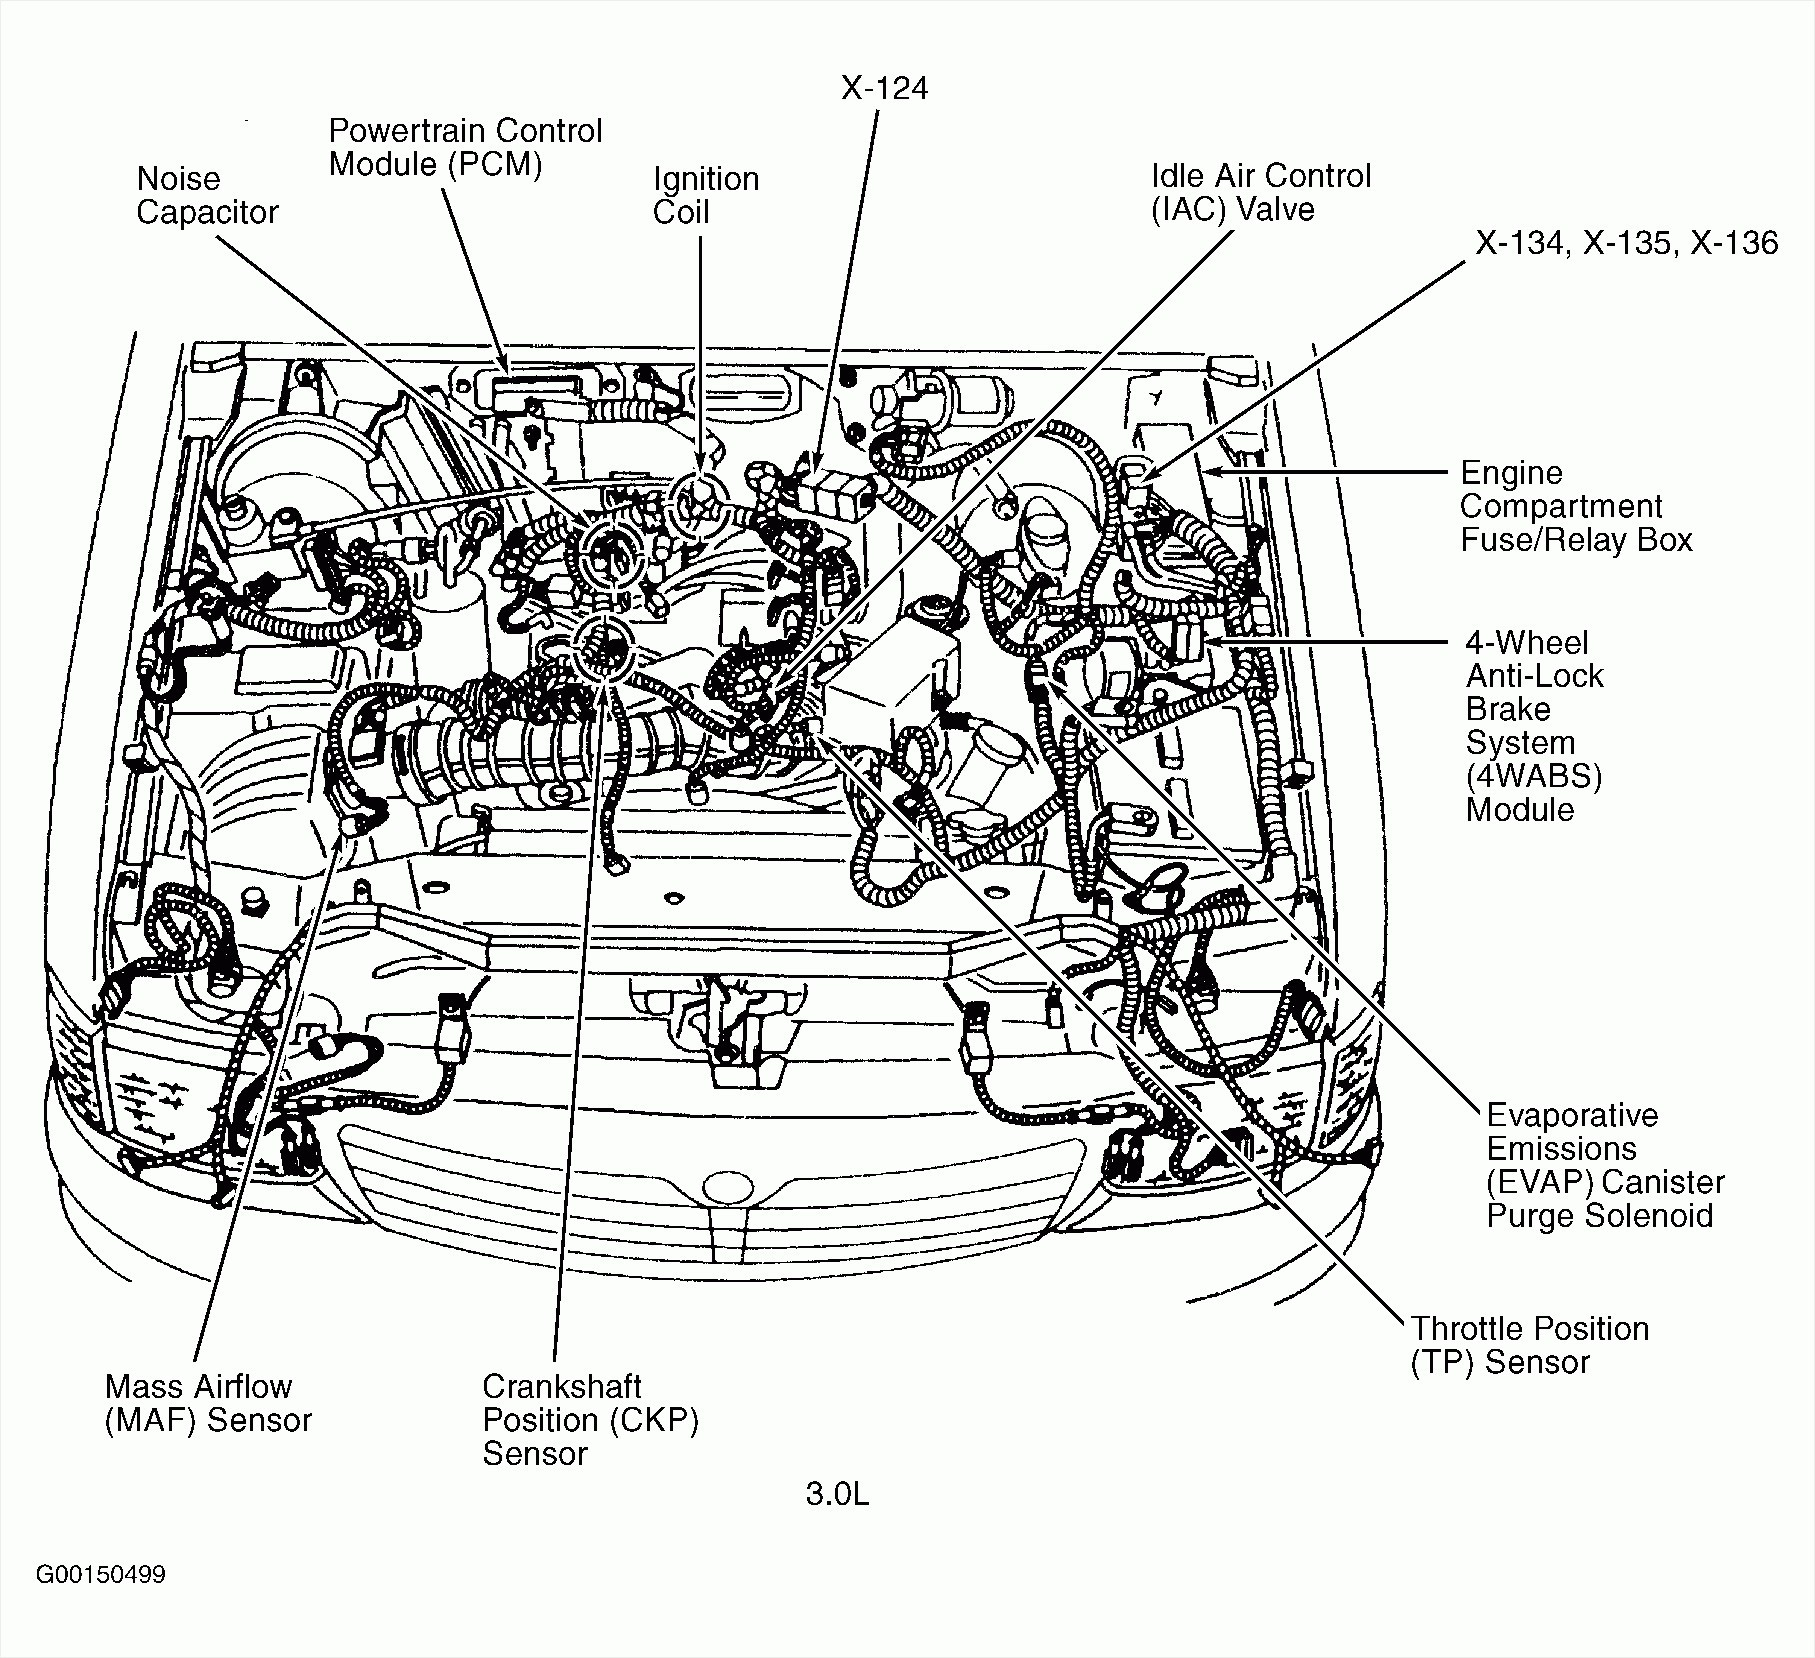 2005 pontiac grand prix engine diagram wire management \u0026 wiring Tcc Wiring Diagram